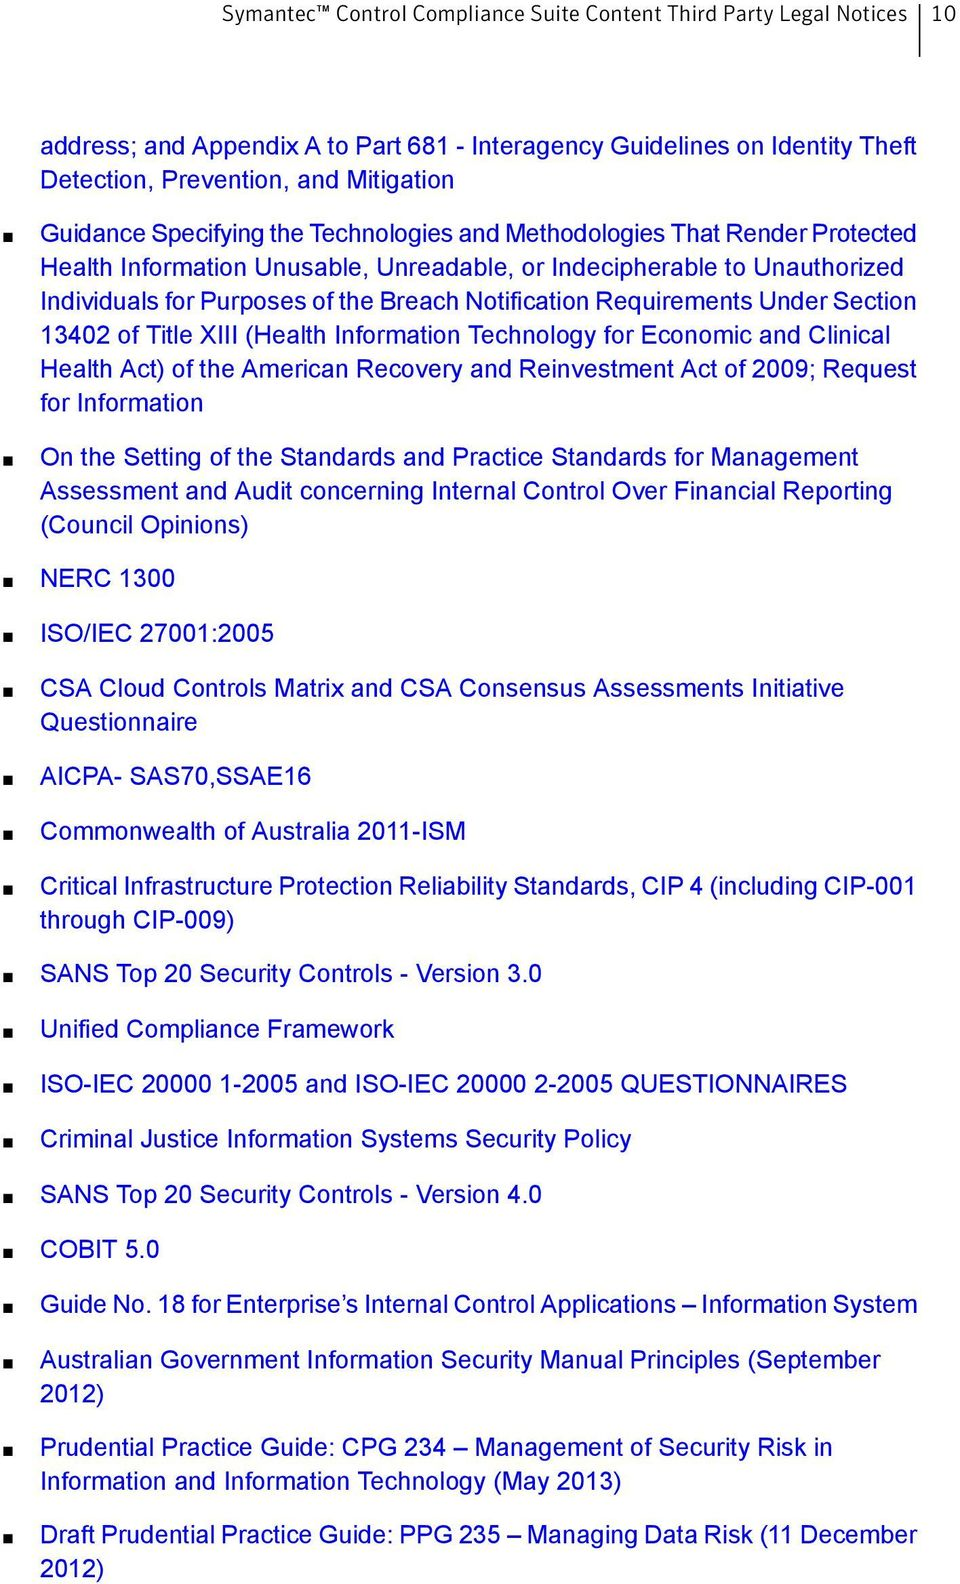 Technology for Economic and Clinical Health Act) of the American Recovery and Reinvestment Act of 2009; Request for Information On the Setting of the Standards and Practice Standards for Management